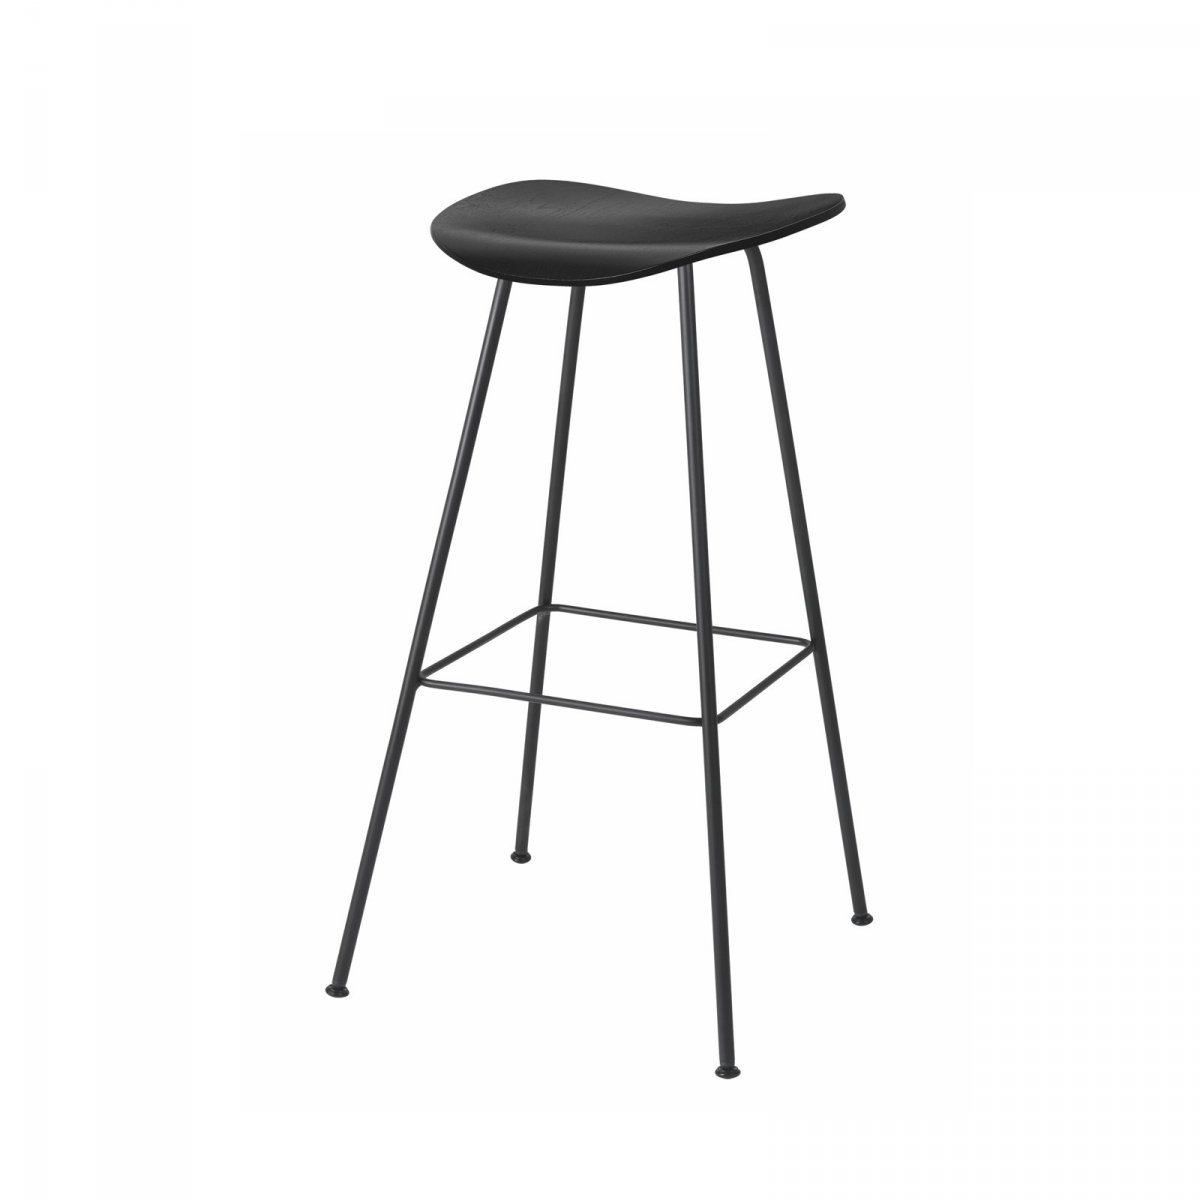 Gubi 2d Stool Center Base By Komplot Design For Gubi Up